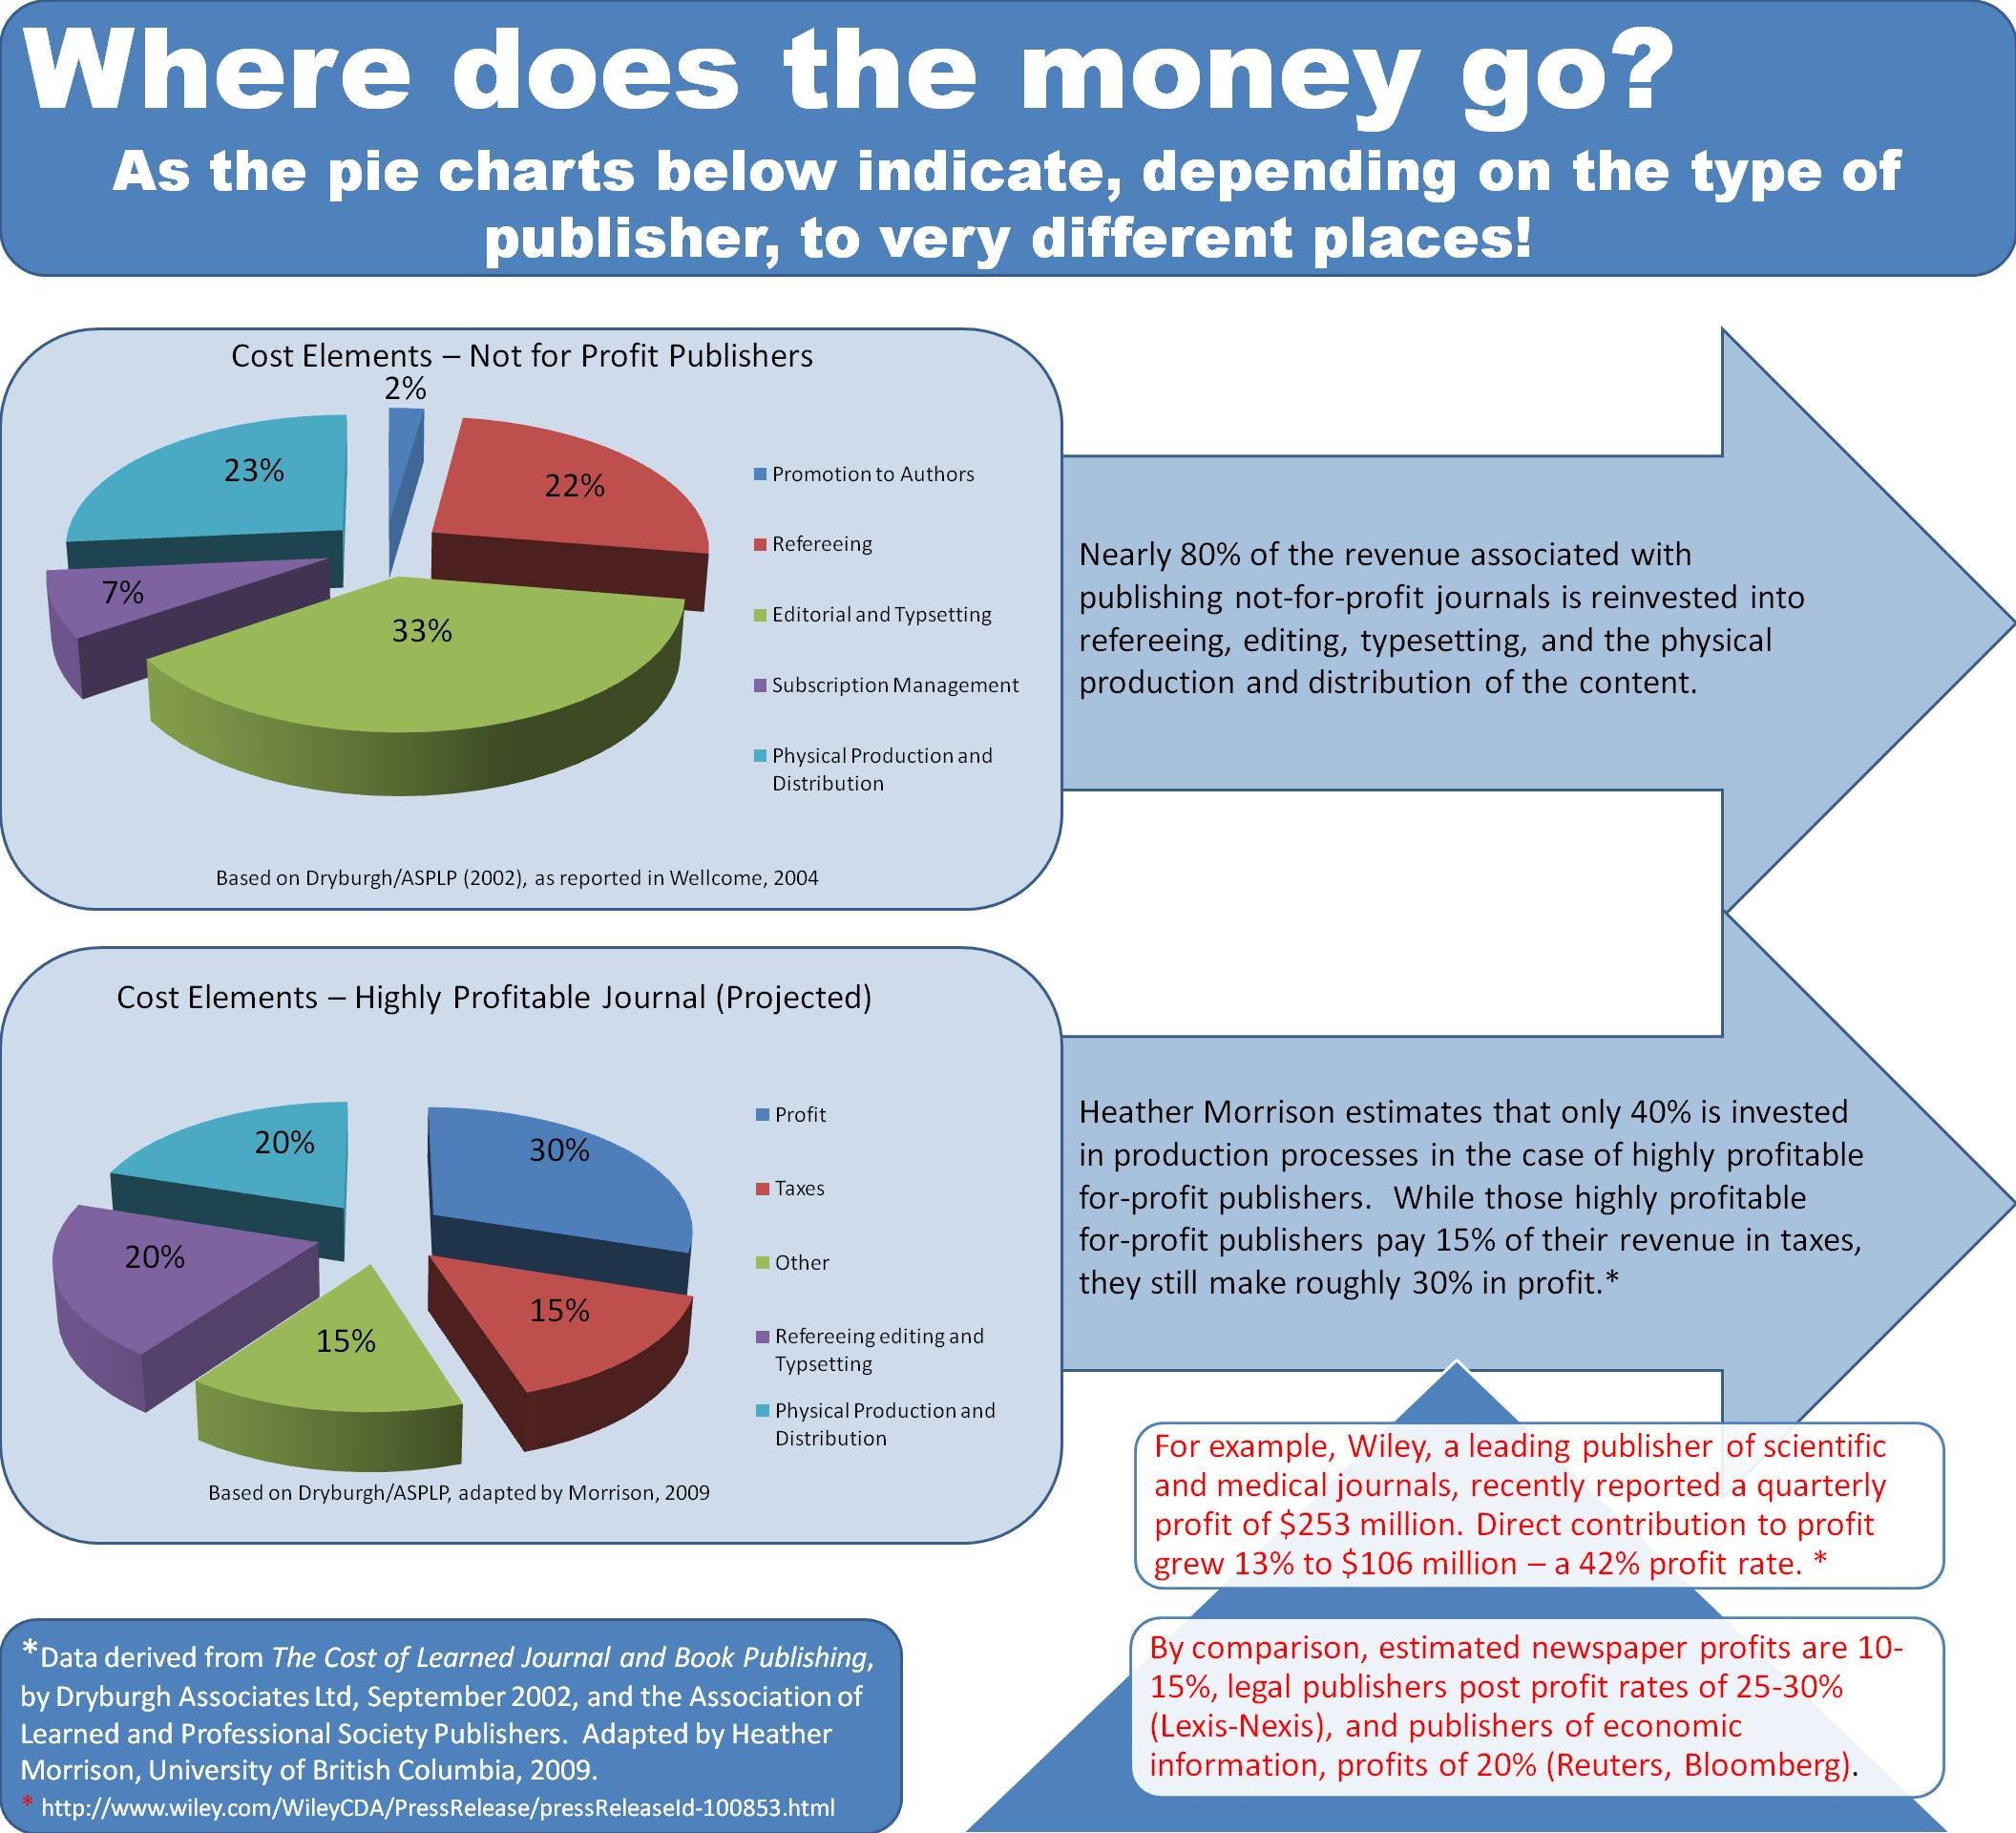 Profit and nonprofit journals put their money in different places, as this graphic shows.